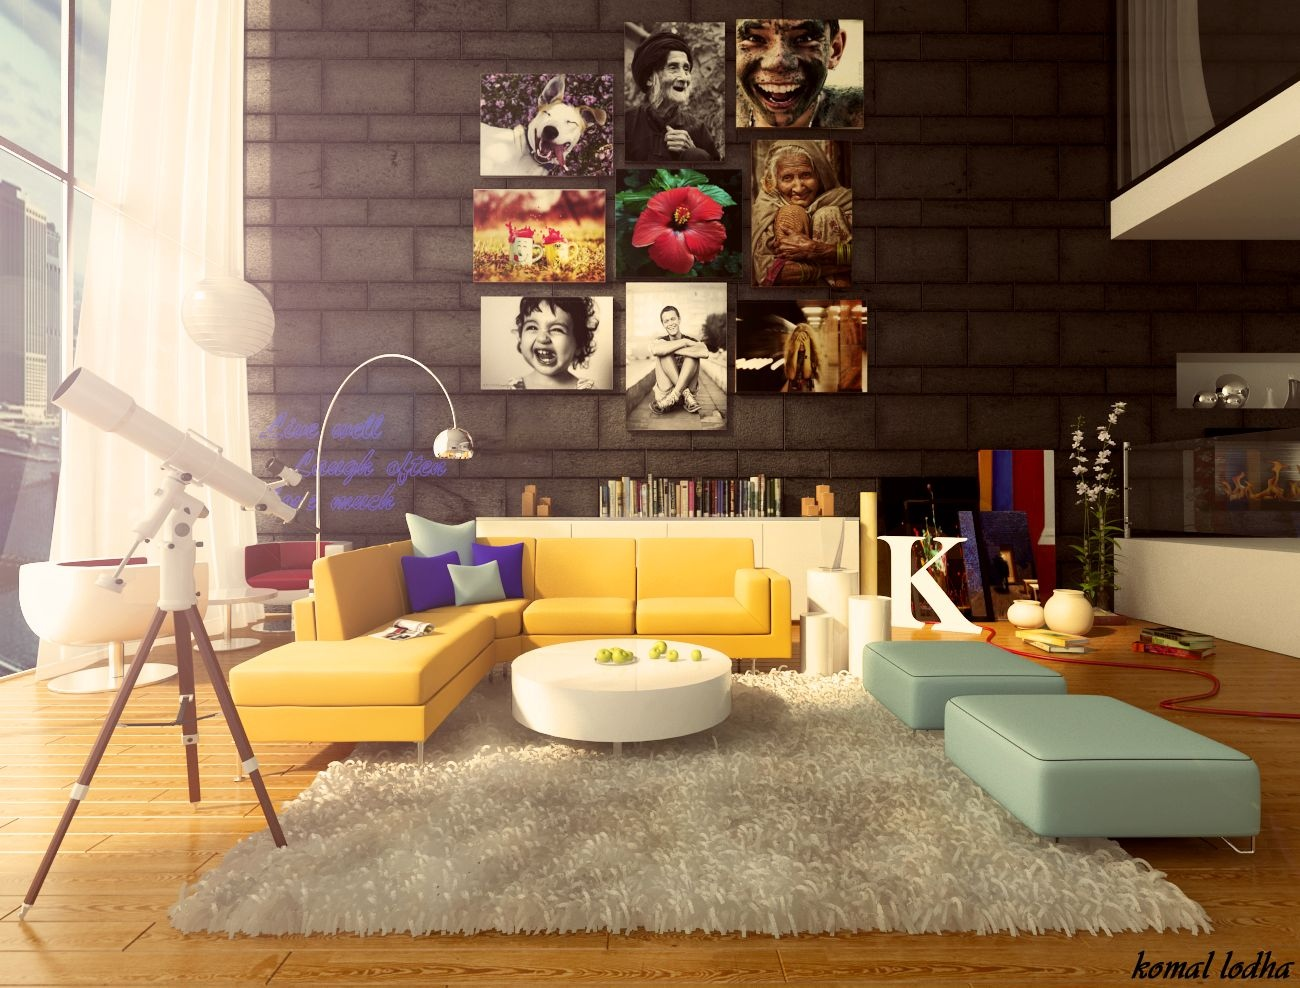 Colorful-living-room-design & Colorful-living-room-design - الراقية